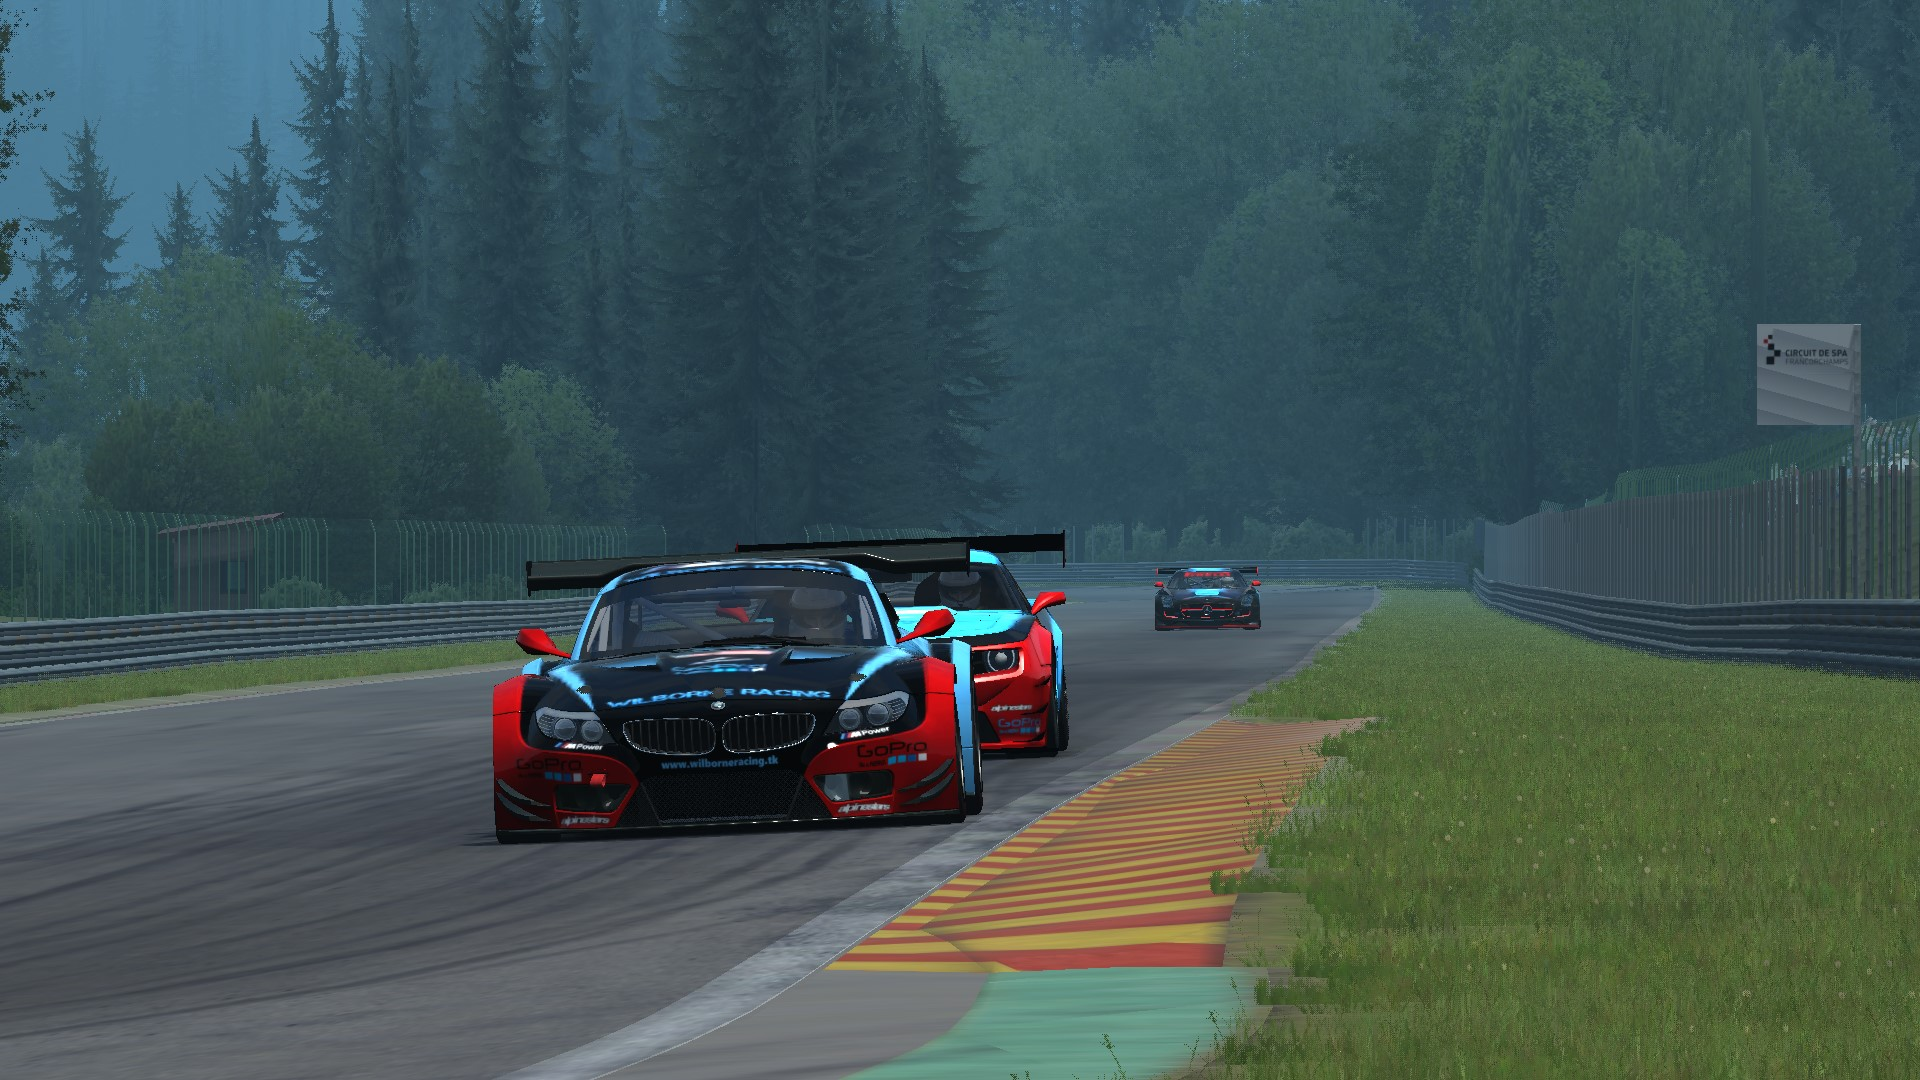 Screenshot_sareni_camaro_gt_racecar_spa_2-2-2015-17-21-9.jpg